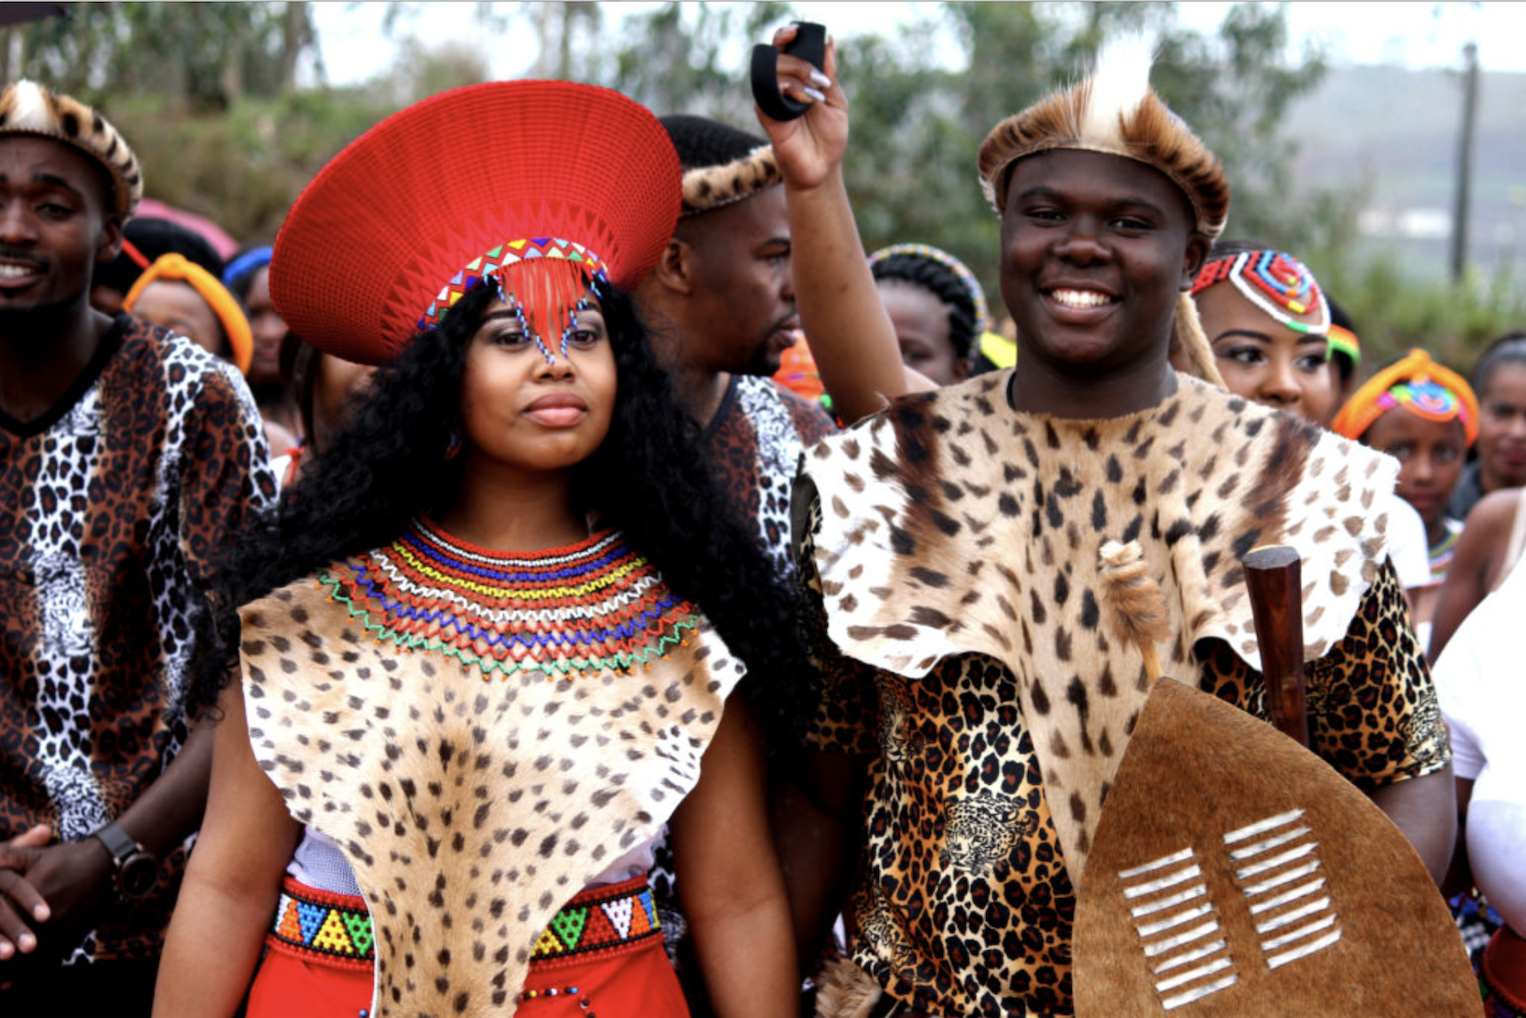 Zulu wedding songs lyrics